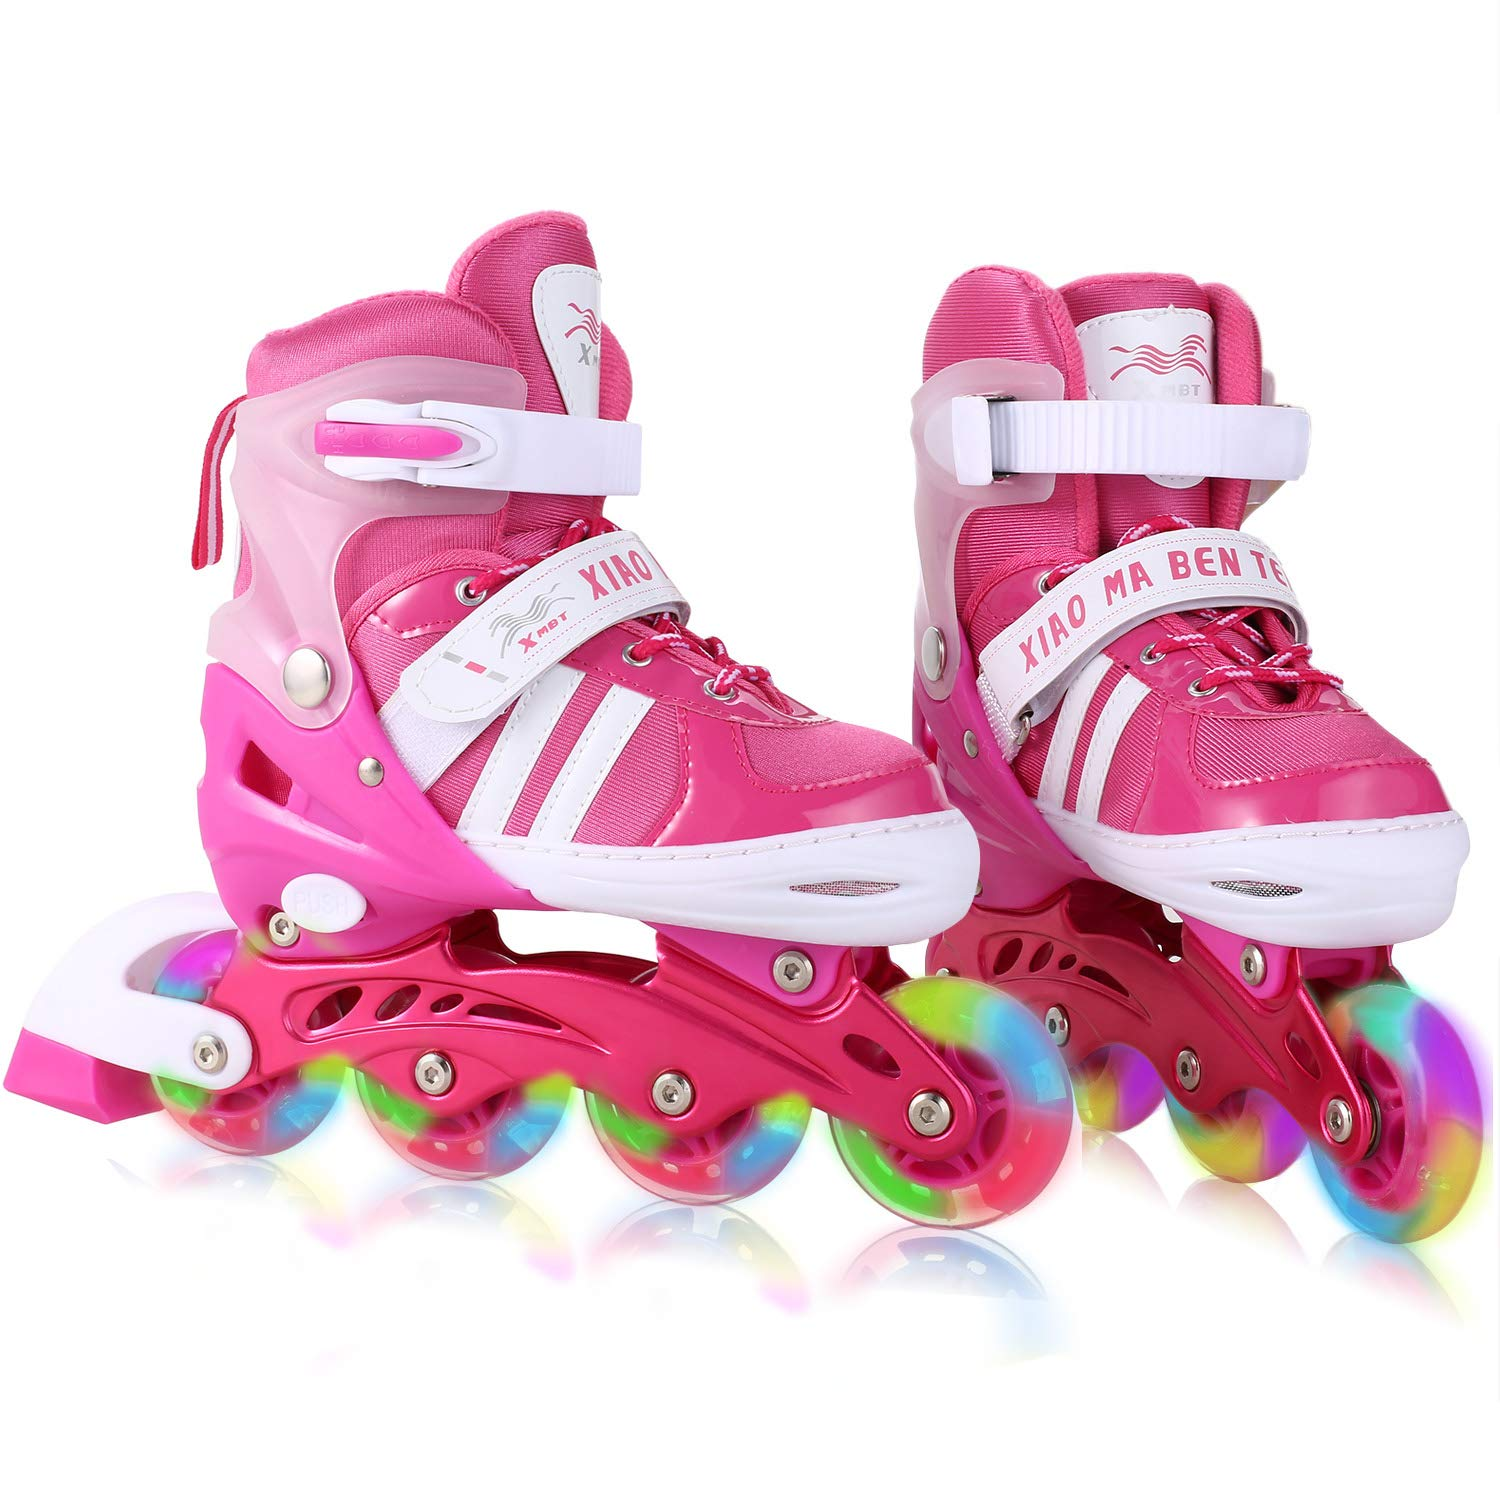 Dongchuan Inline Skates Women/Men Adjustable Size 5-8 Kid 12J-2/2-5 for Boys Girls Aggressive Roller Skates